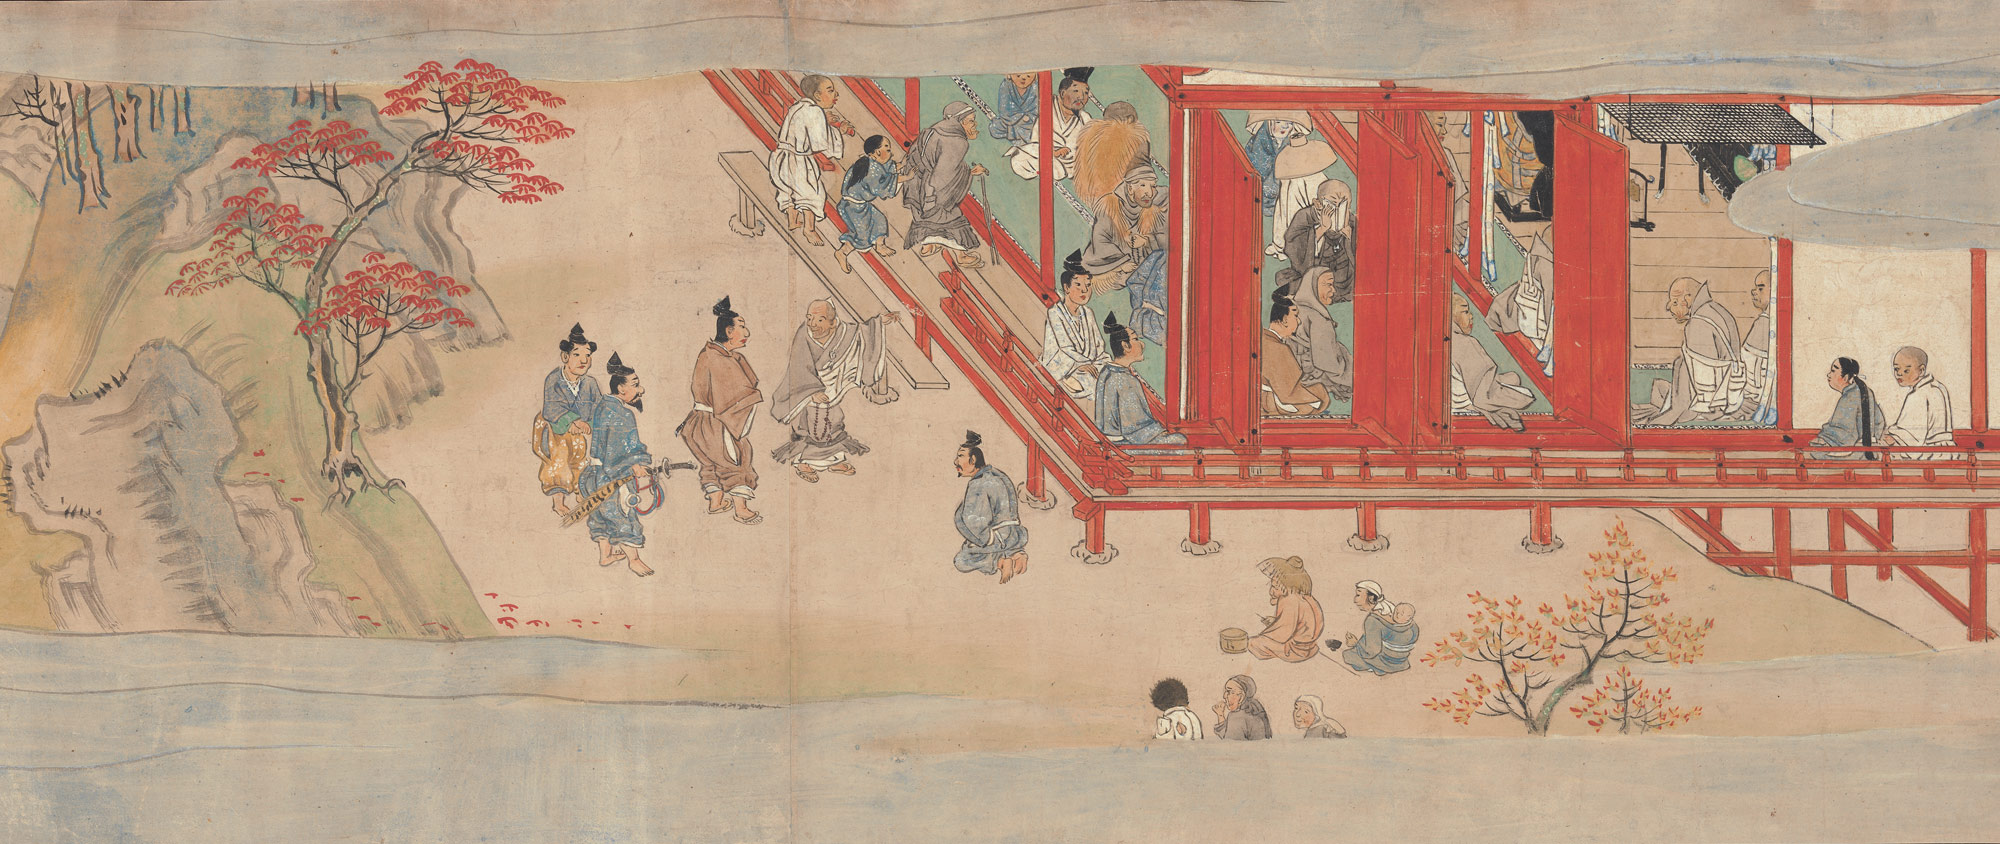 Illustrated Legends of the Jinōji Temple (Jinōji Engi Emaki)